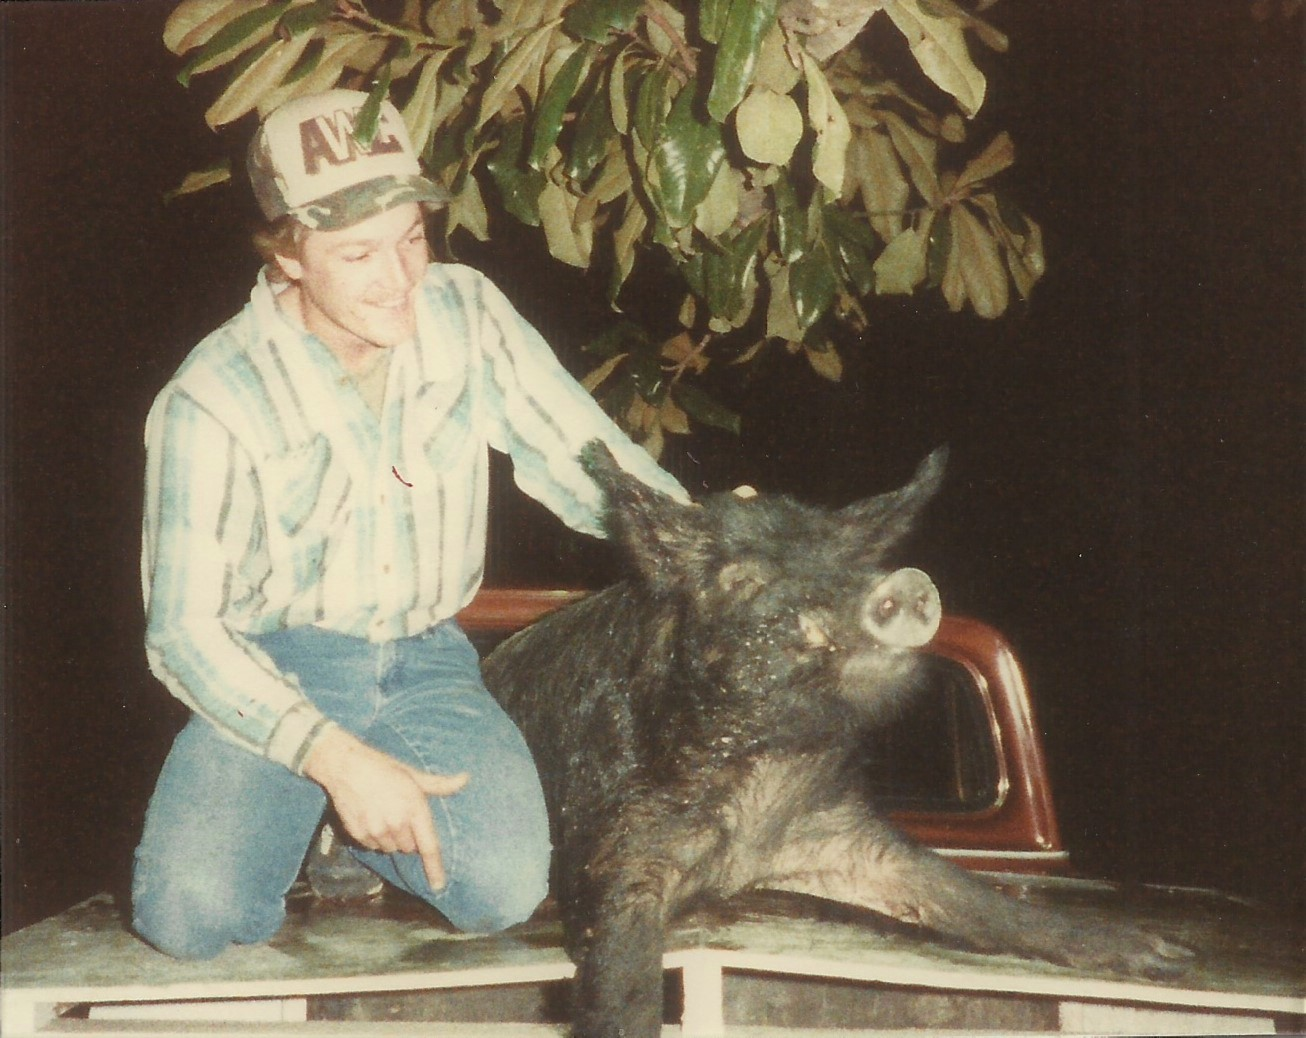 Kevin Hamm's 1987 deer hunt yielded unexpected results when he crossed paths with this massive wild hog in southern Mississippi.